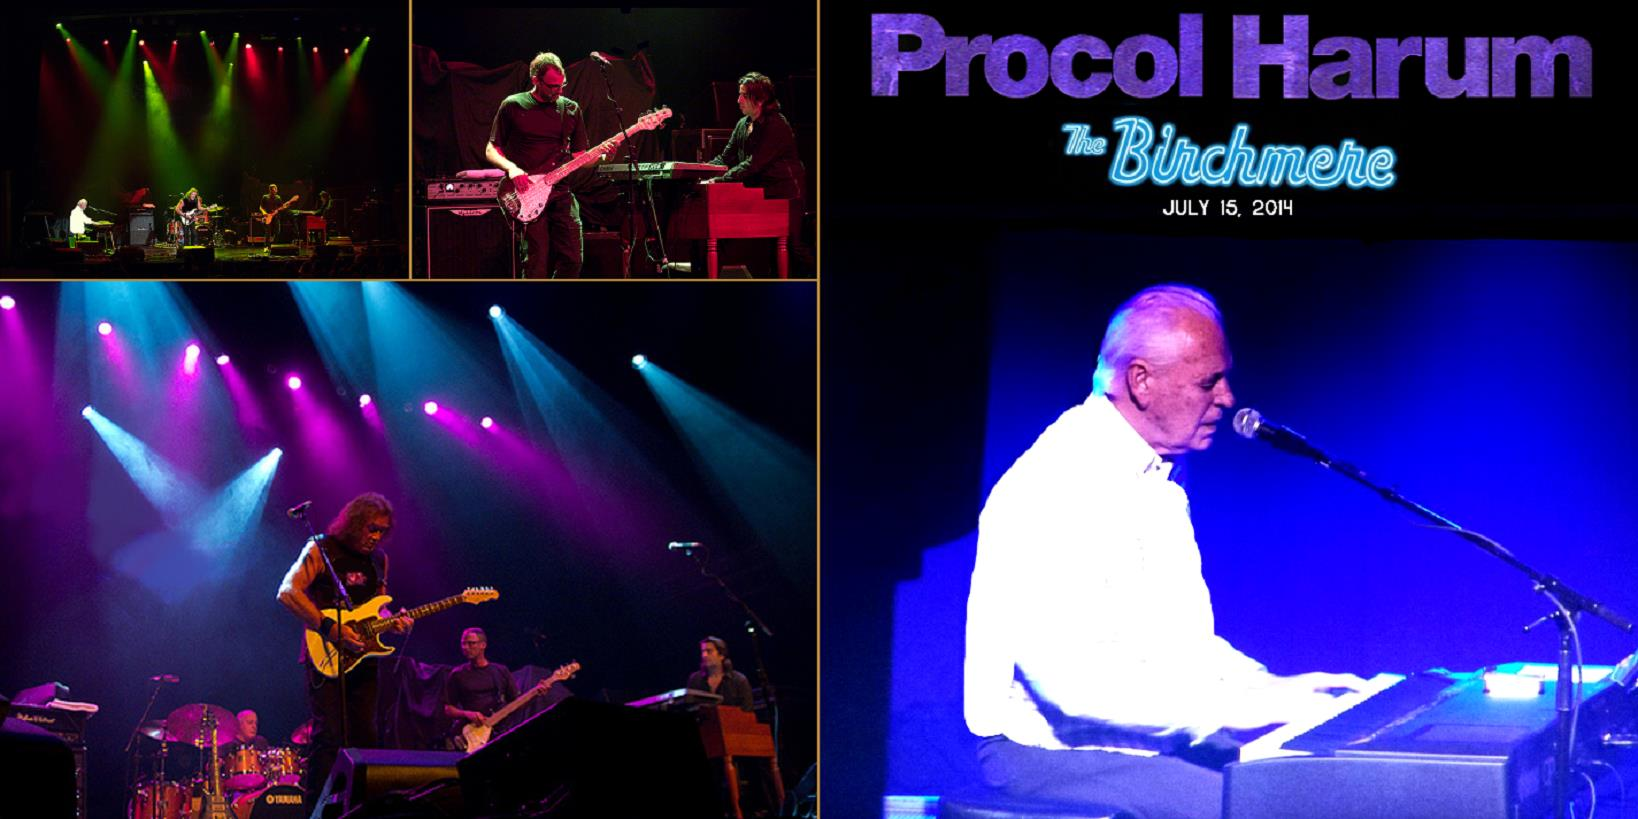 2014-07-15-THE_BIRCHMERE-front